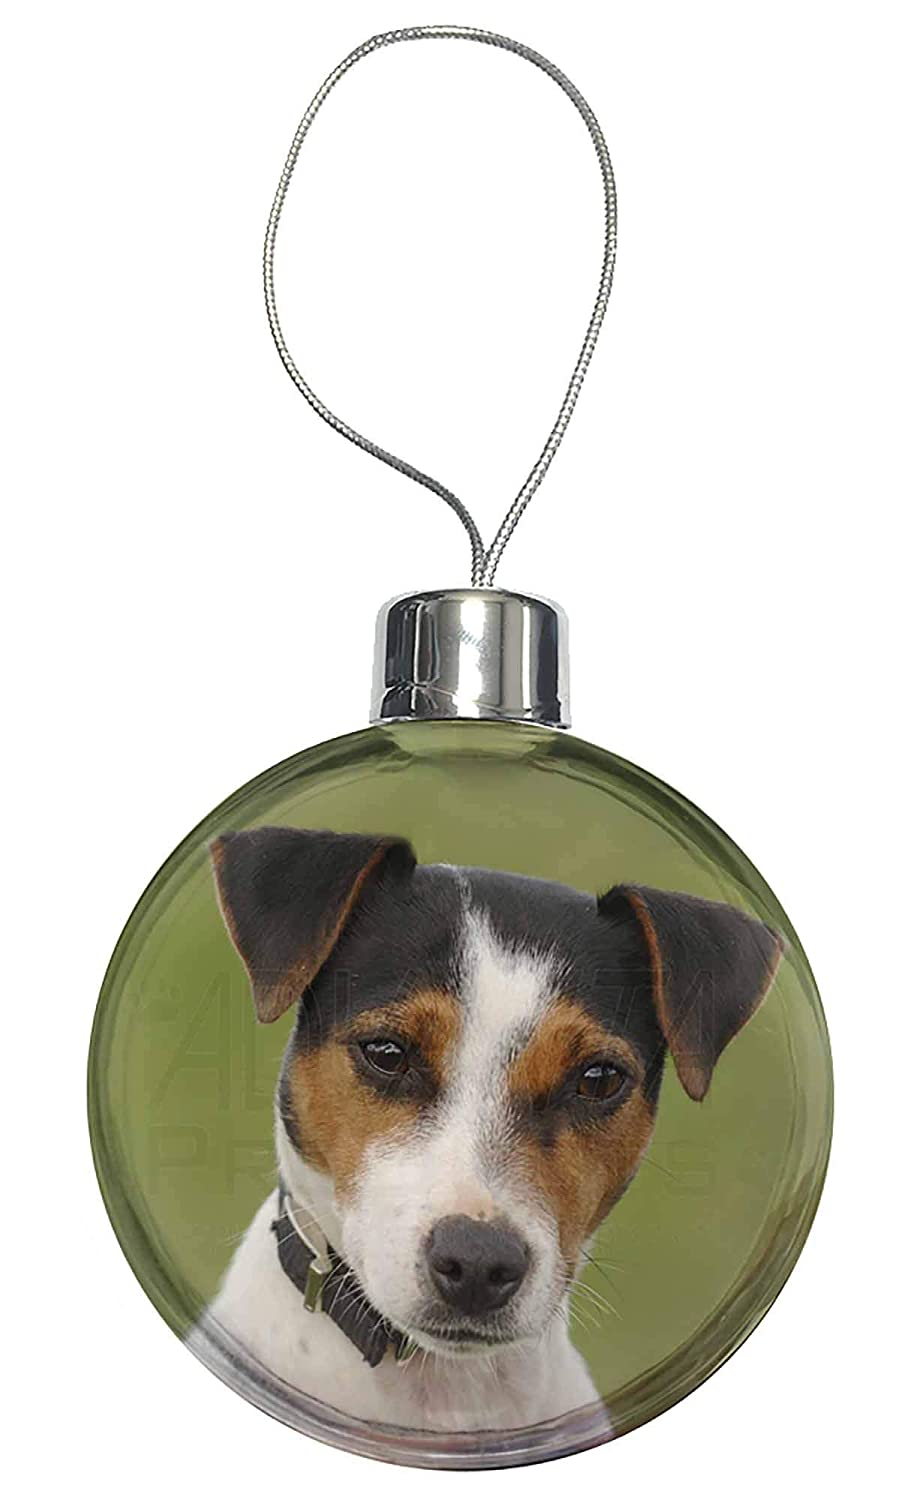 AD-JR57CB Jack Russell Terrier Dog Christmas Tree Bauble Decoration Gift